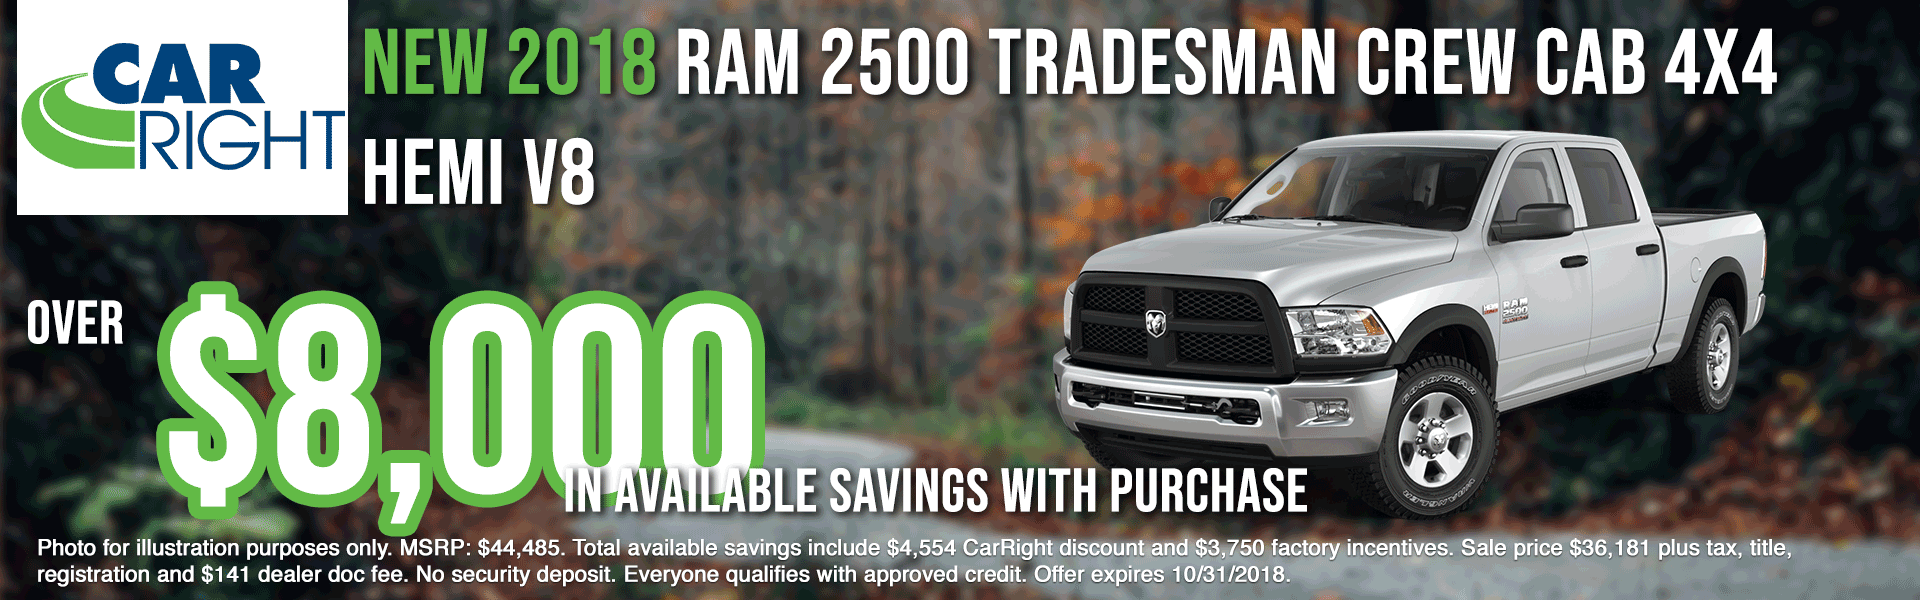 carright new vehicle specials carright specials chrysler specials dodge specials jeep specials ram specials lease specials moon township buy your car right the right way to buy a car B2812---2018-RAM-2500-TRADESMAN-CREW-CAB-4X4-OCT-BIG